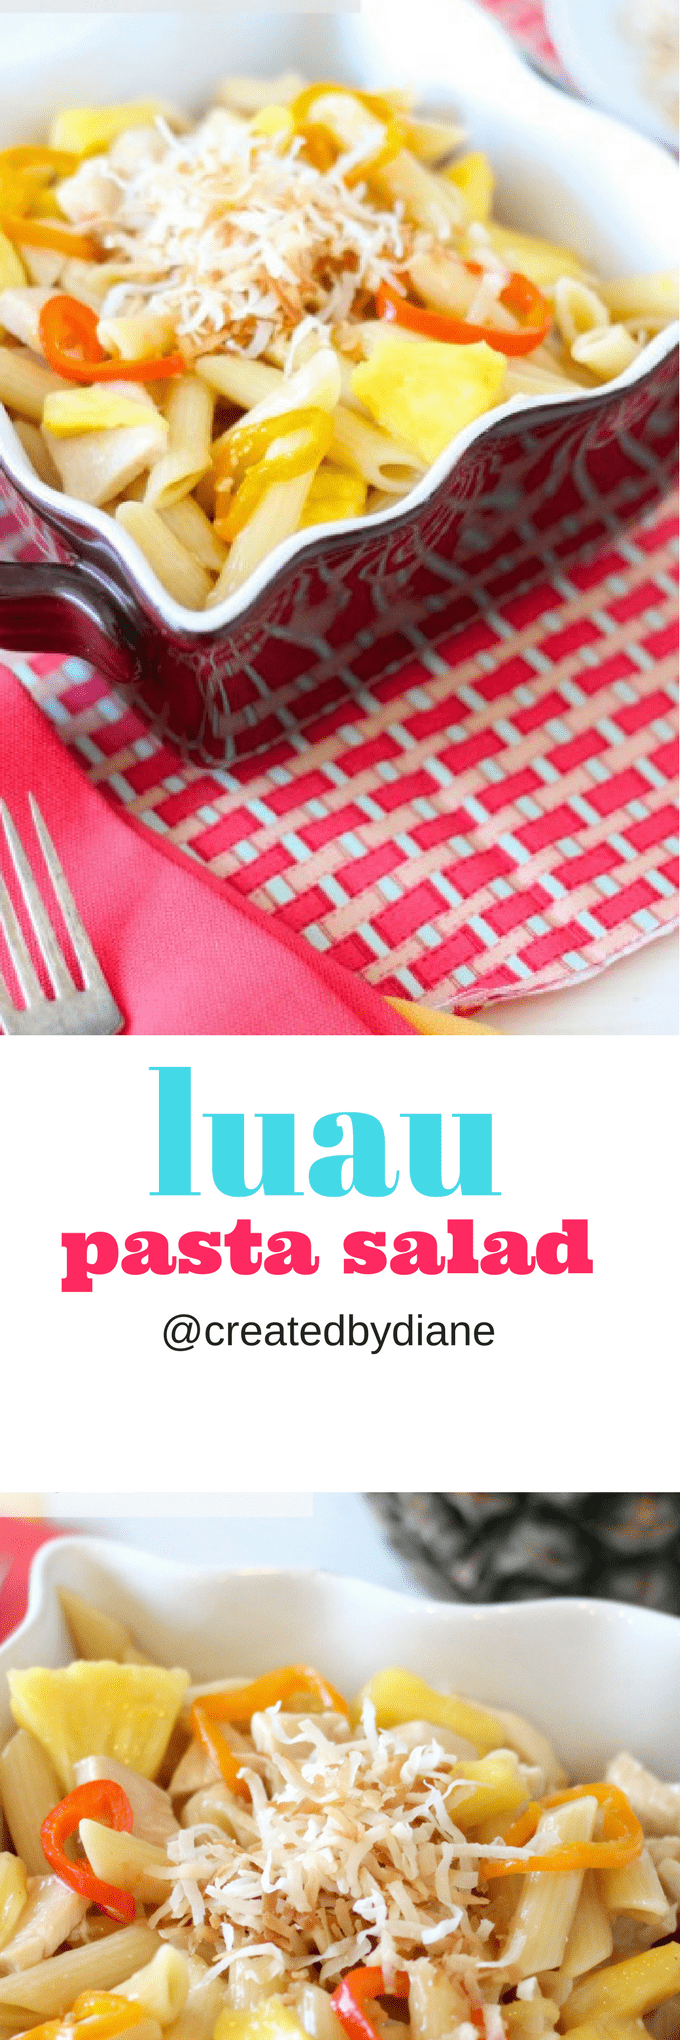 luau pasta salad, pineapple and coconut